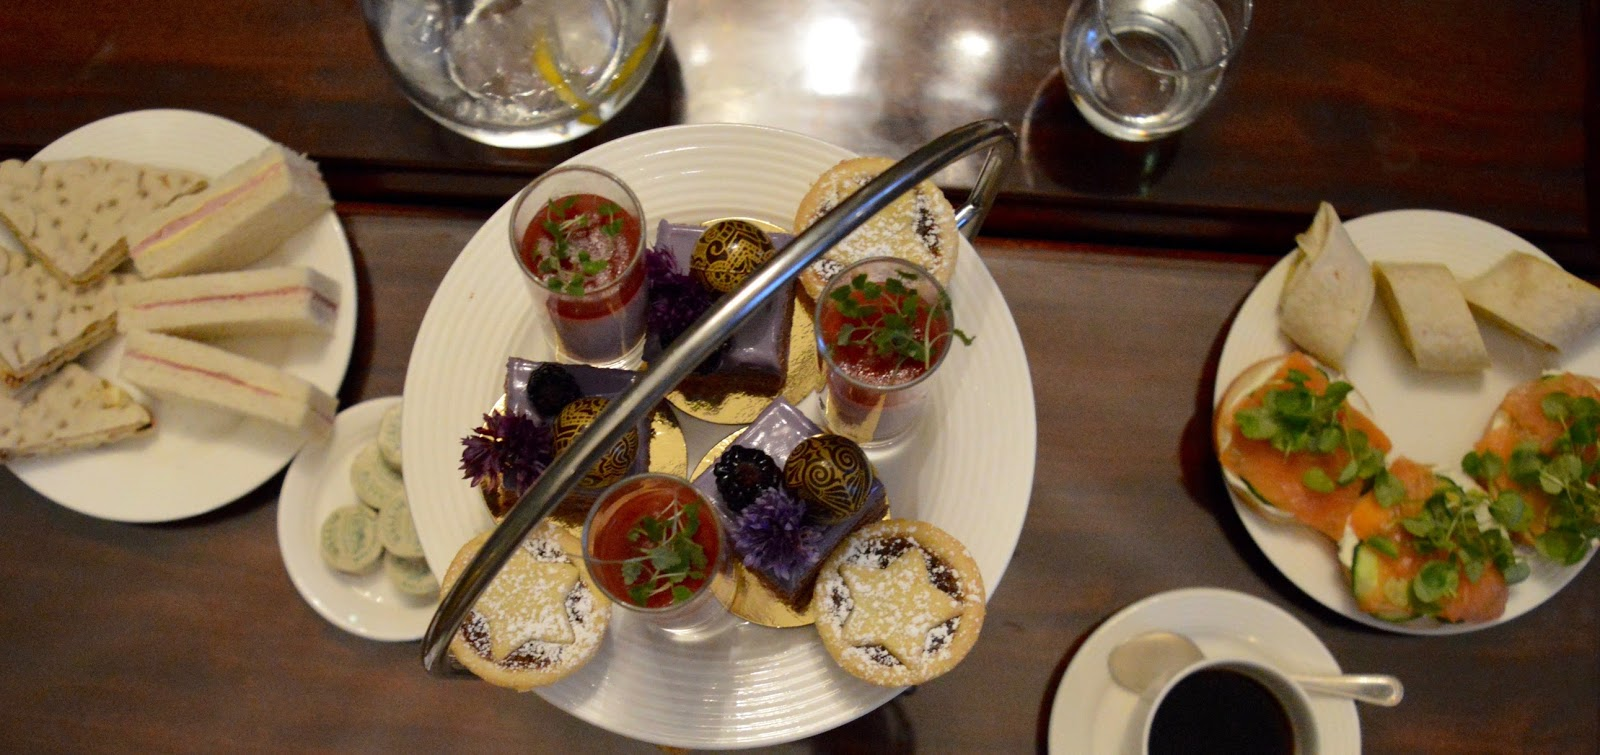 Afternoon tea at Wynyard Hall (with kids) - A Review - afternoon tea stand